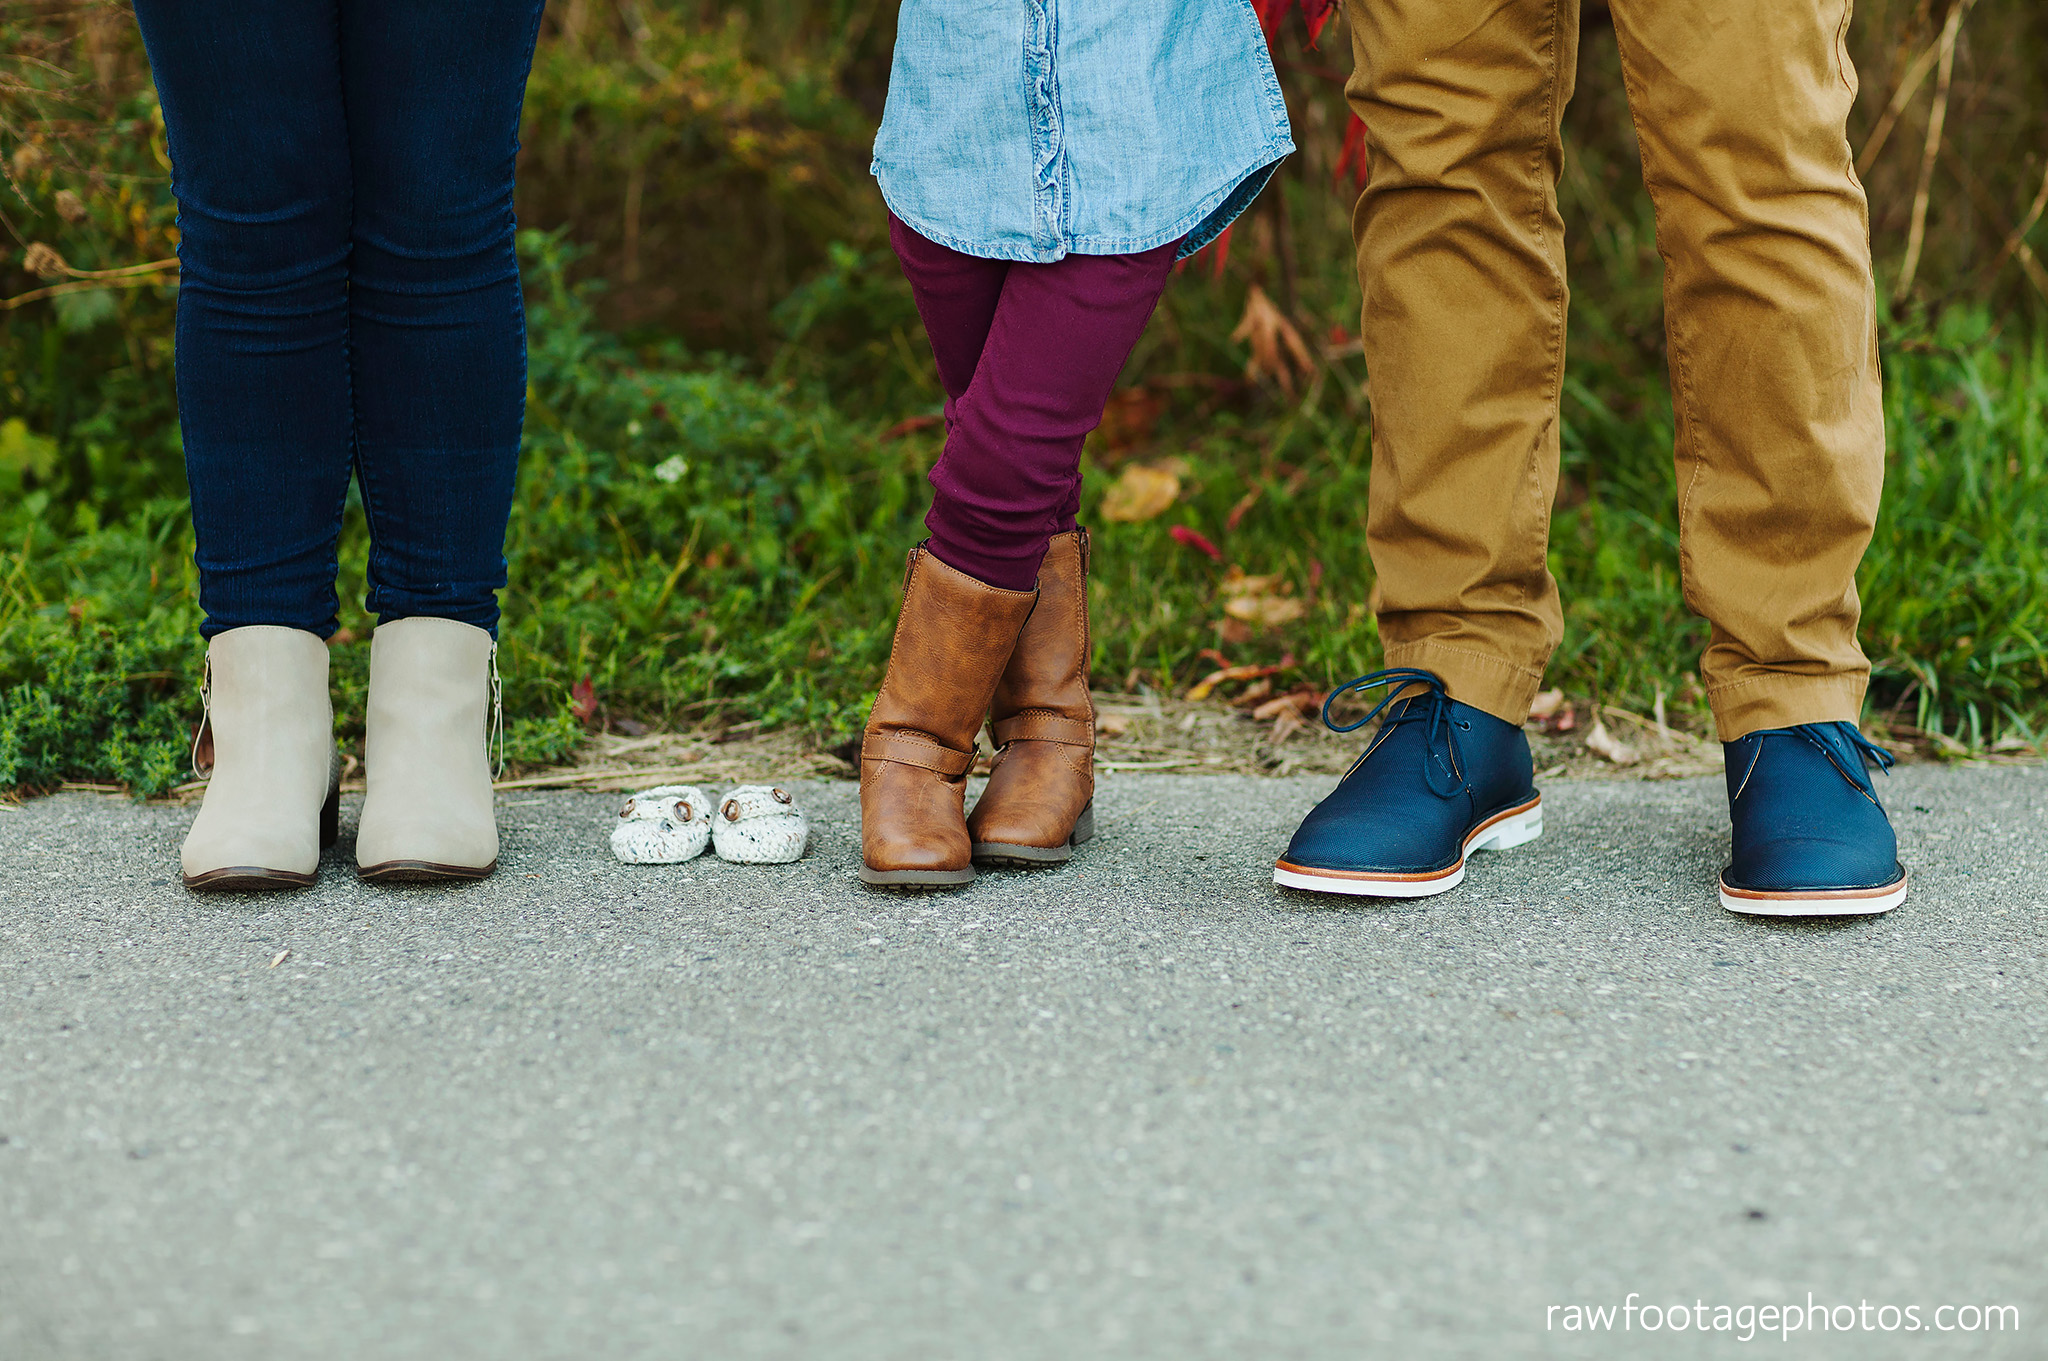 london_ontario_family_photographer-golden_hour_maternity_session-raw_footage_photography029.jpg